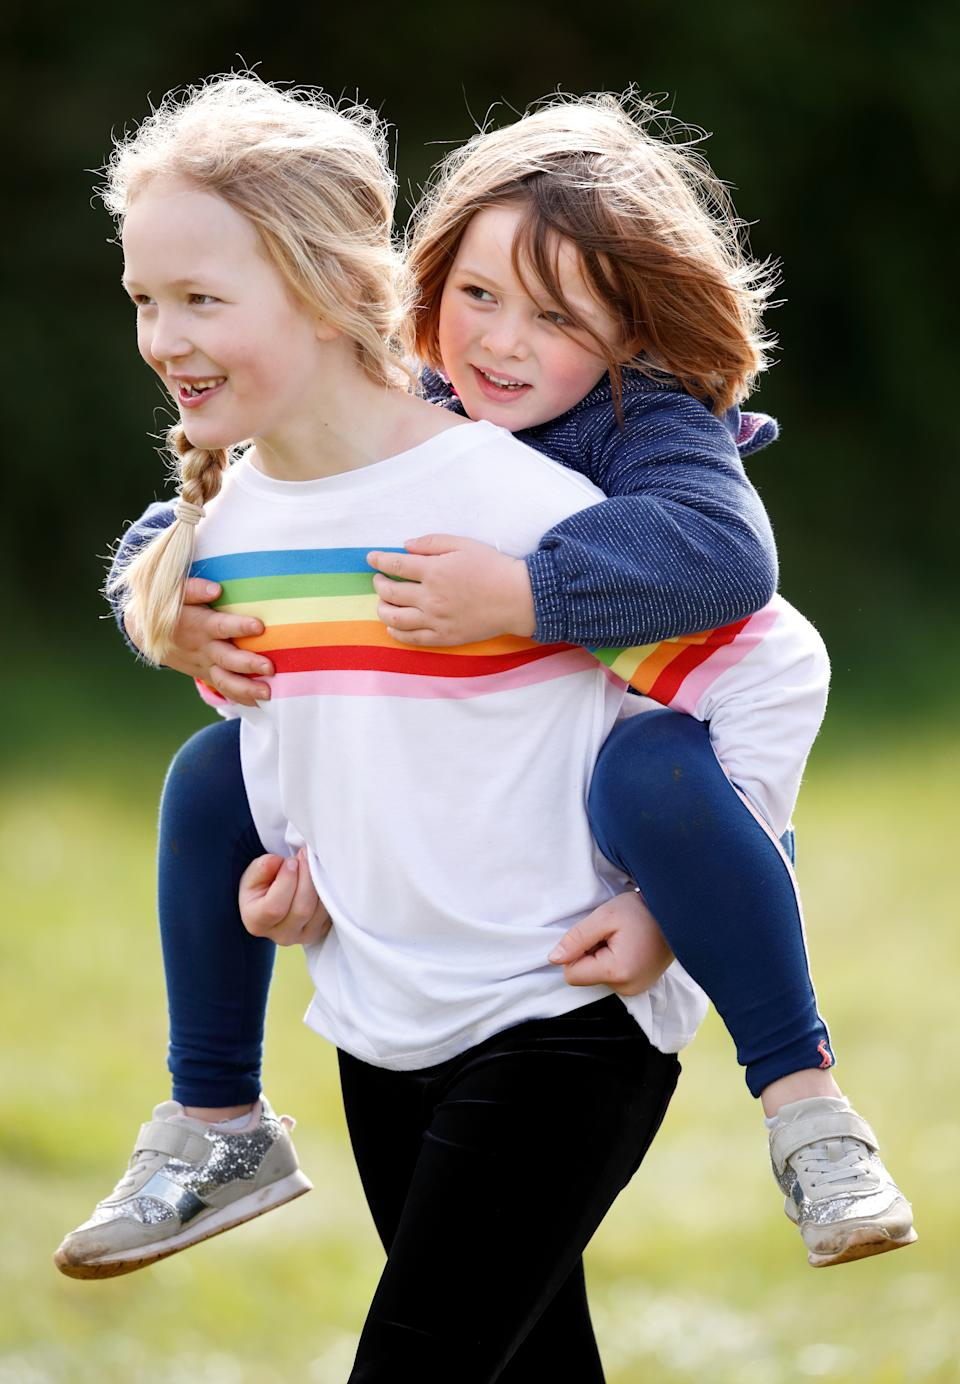 STROUD, UNITED KINGDOM - MARCH 23: (EMBARGOED FOR PUBLICATION IN UK NEWSPAPERS UNTIL 24 HOURS AFTER CREATE DATE AND TIME) Savanah Phillips gives her cousin Mia Tindall a piggyback as they attend the Gatcombe Horse Trials at Gatcombe Park on March 23, 2019 in Stroud, England. (Photo by Max Mumby/Indigo/Getty Images)